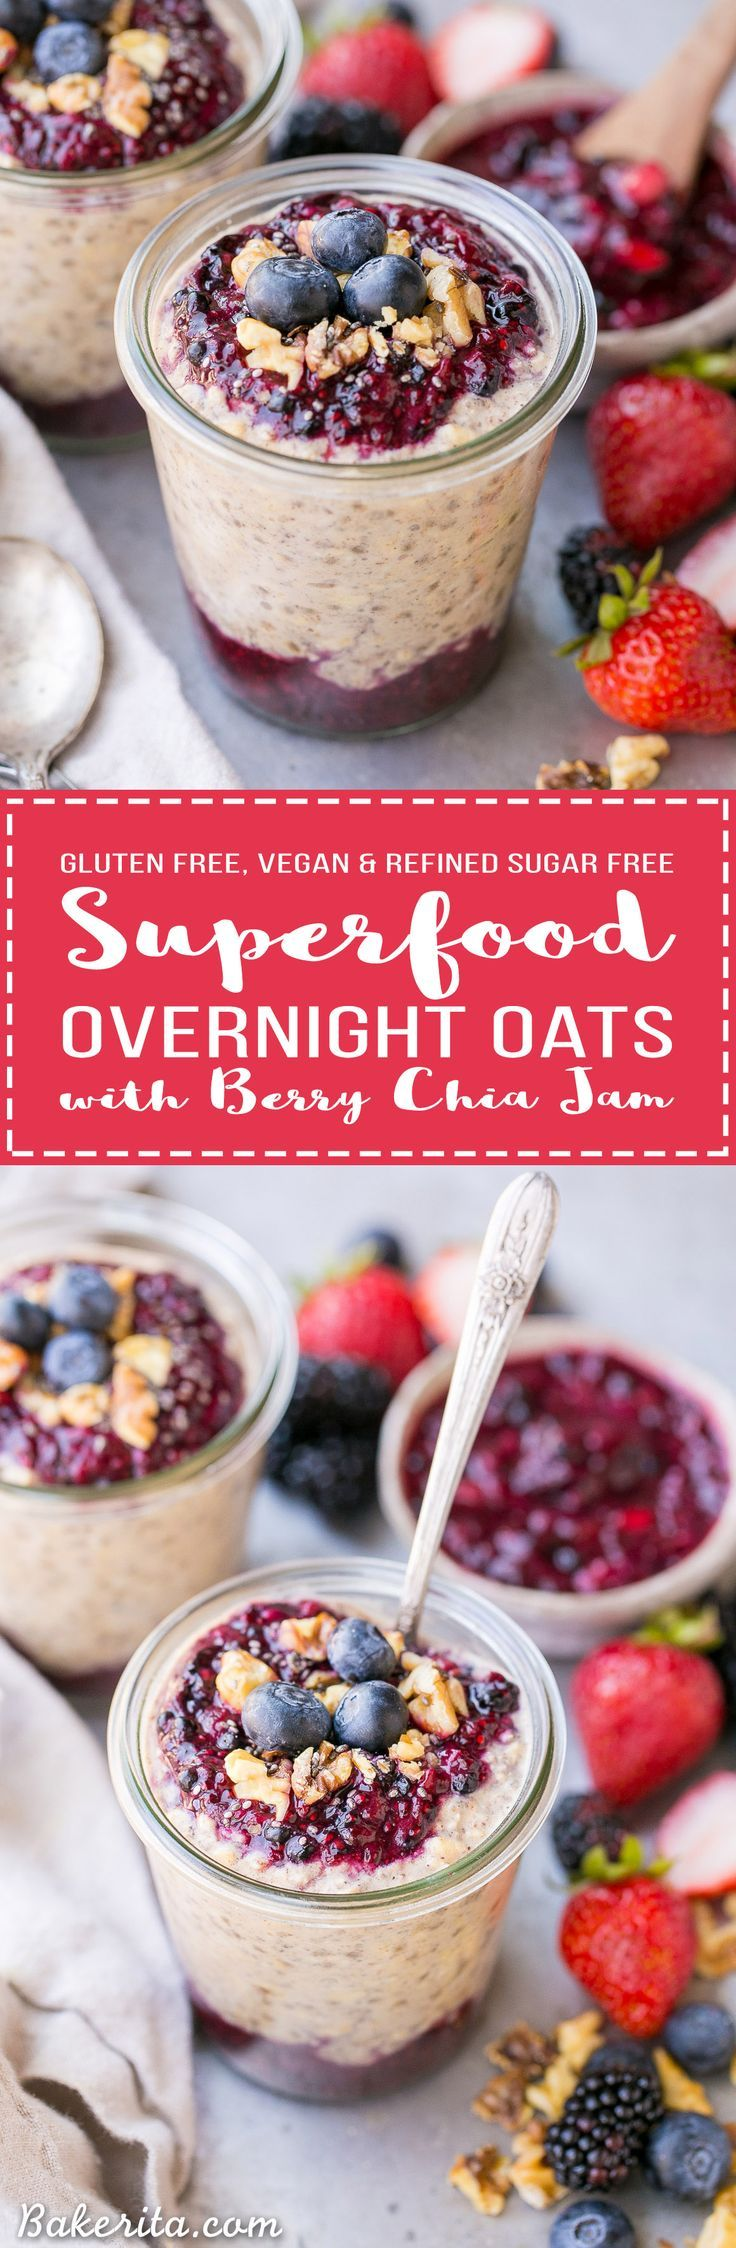 These Superfood Overnight Oats with Easy Berry Chia Jam are the perfect filling breakfast, loaded with superfoods to give your day a kickstart. This gluten-free, refined sugar-free and vegan recipe can be prepped in a just few minutes for a delicious grab